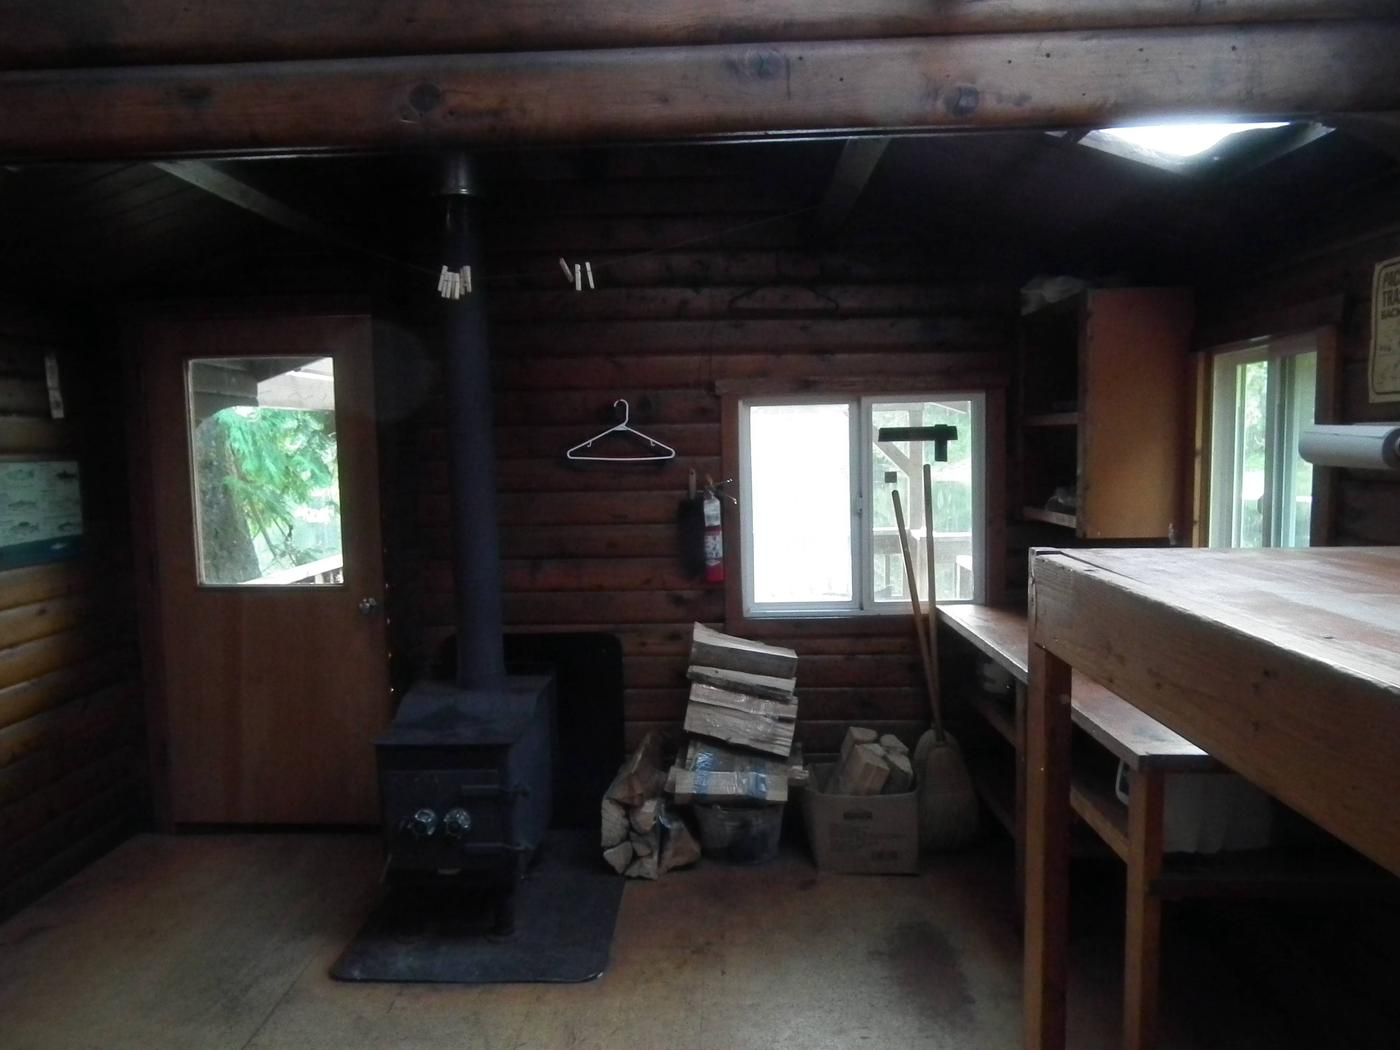 Front Half of CabinEntrance, Kitchen Area, and Stove